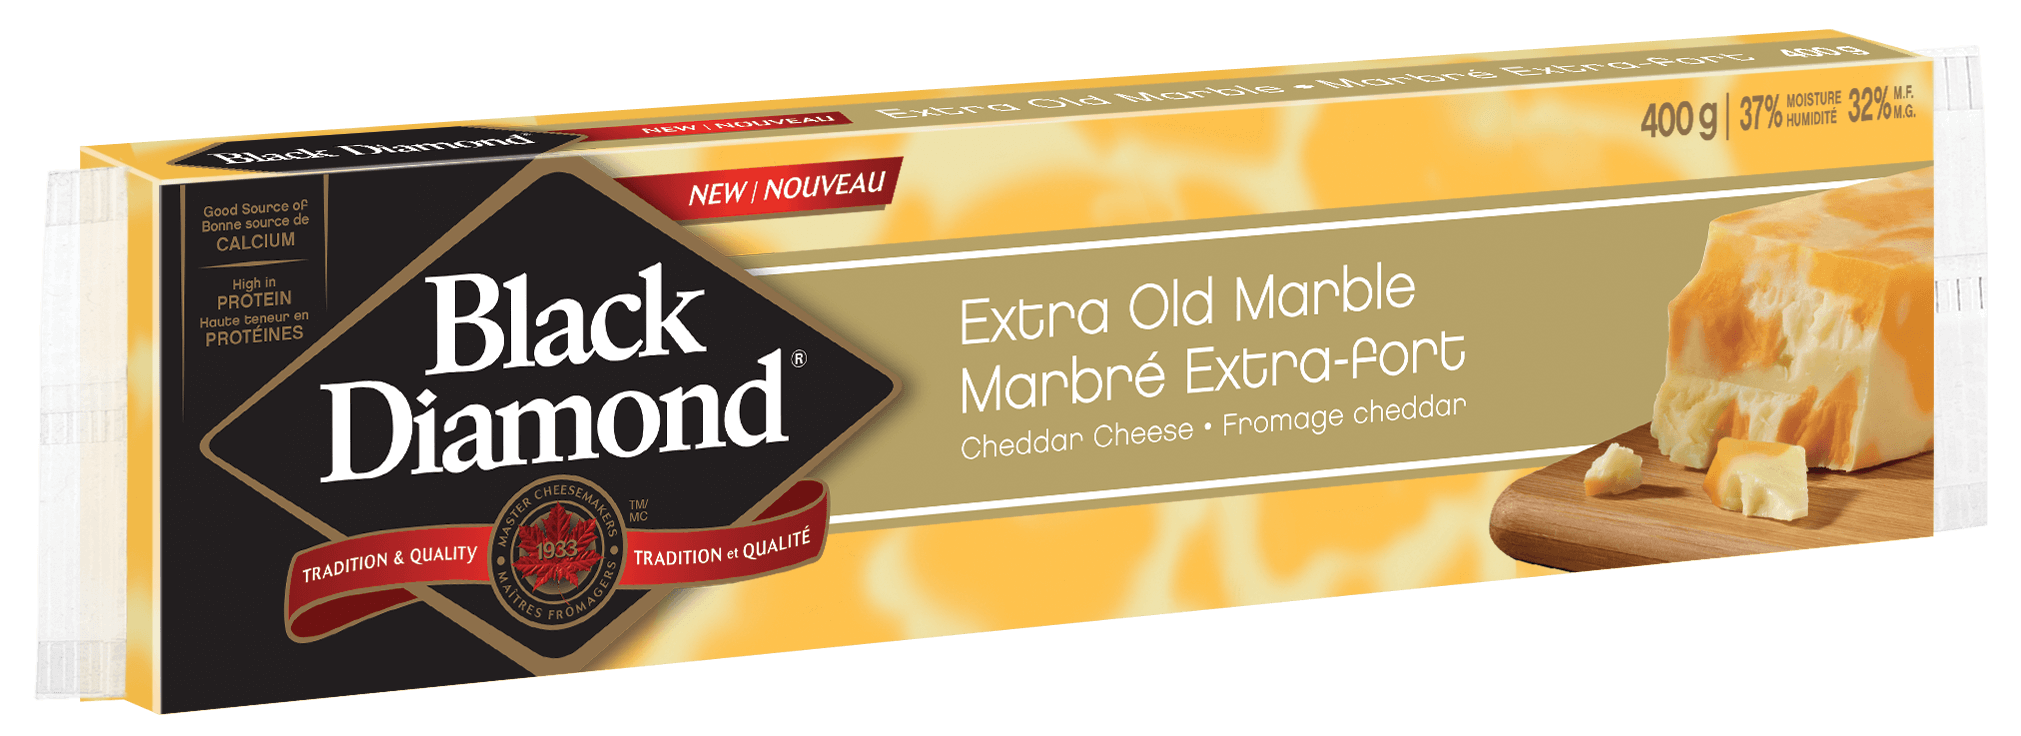 Extra Old Marble Cheddar 400g